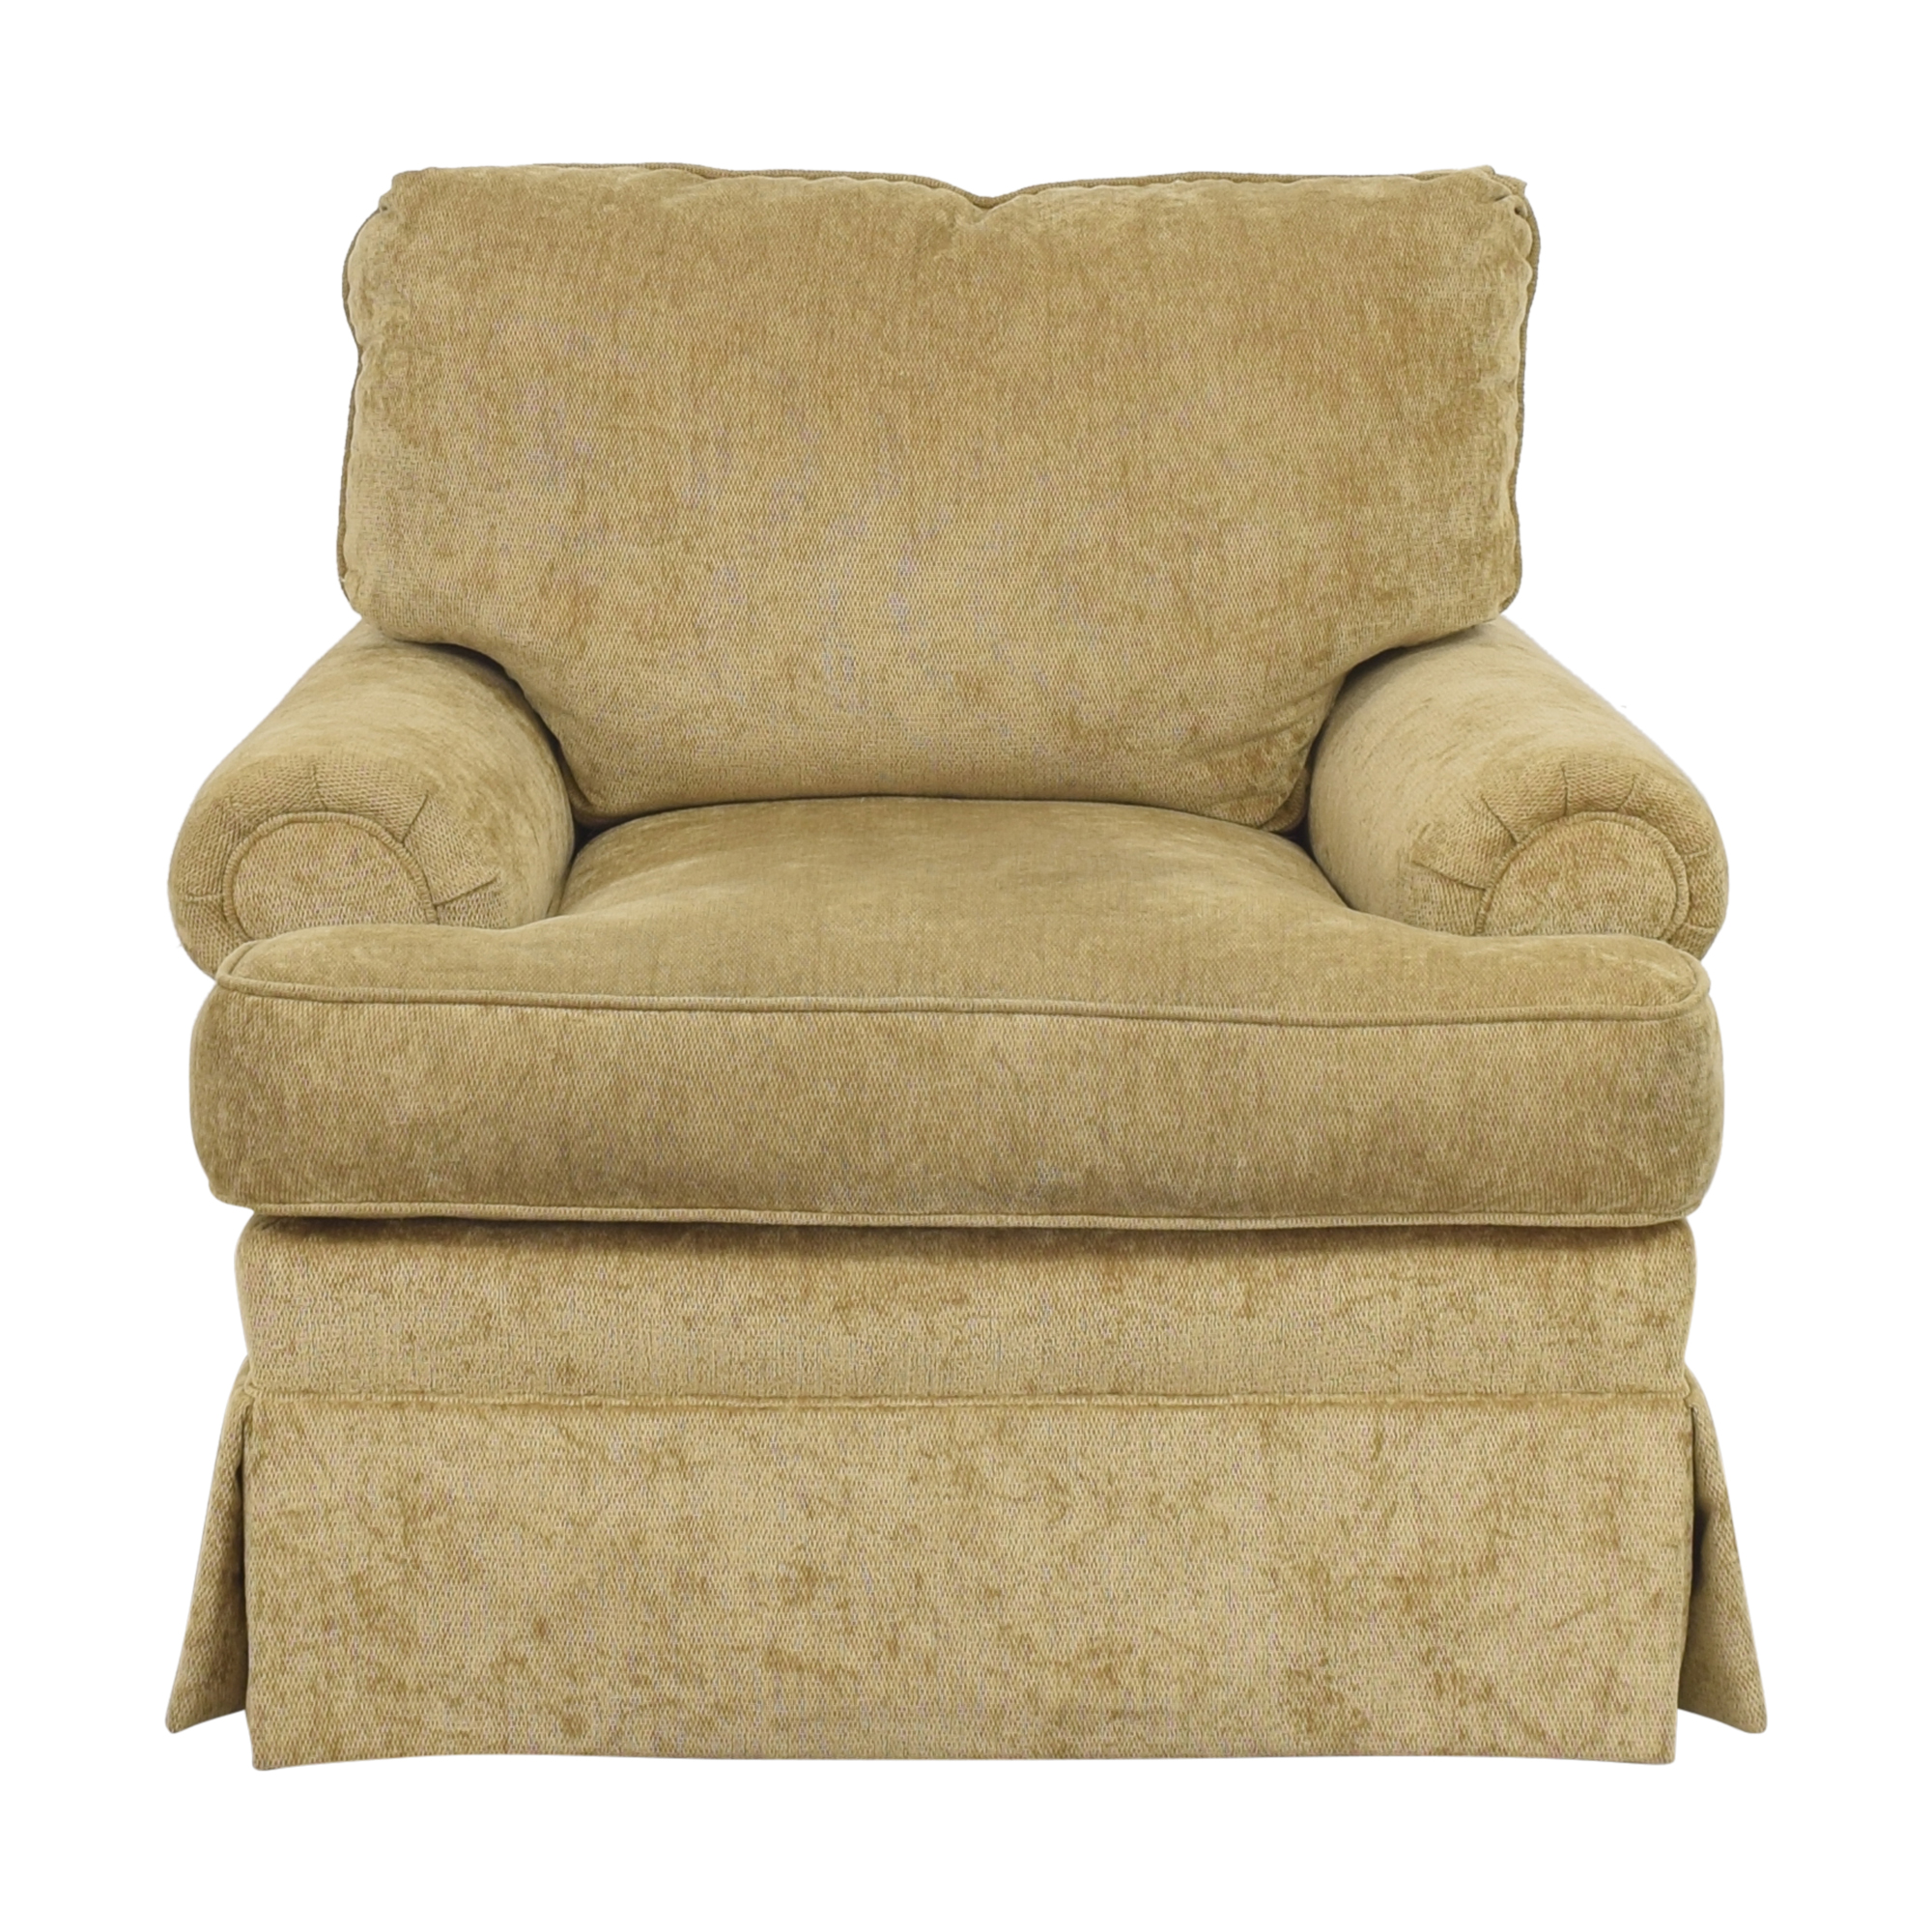 buy Century Furniture Century Furniture Roll Arm Swivel Chair online